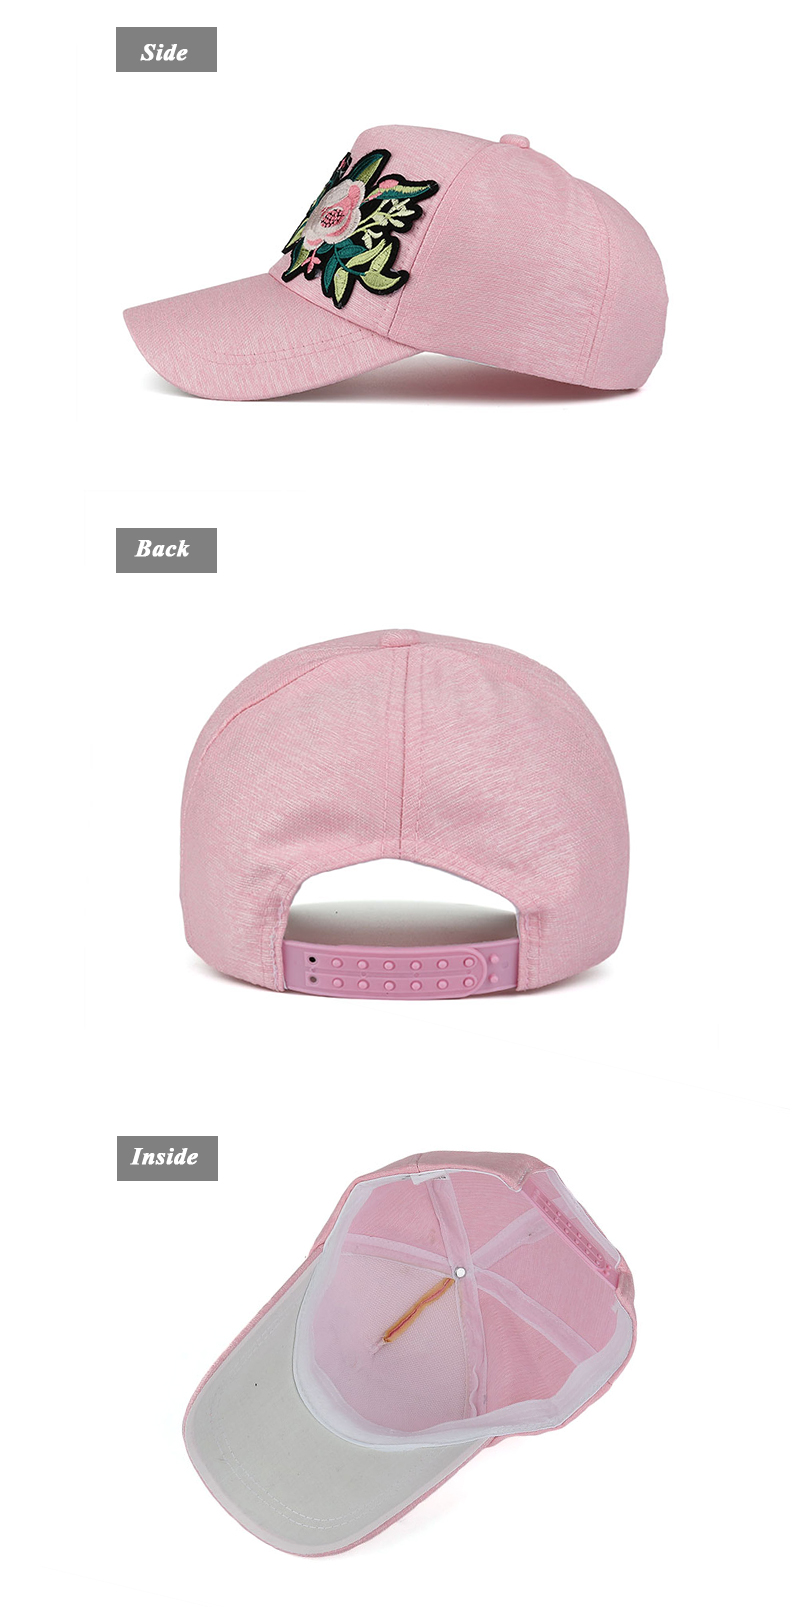 Embroidered Flower Snapback Cap - Side, Rear and Inside Views